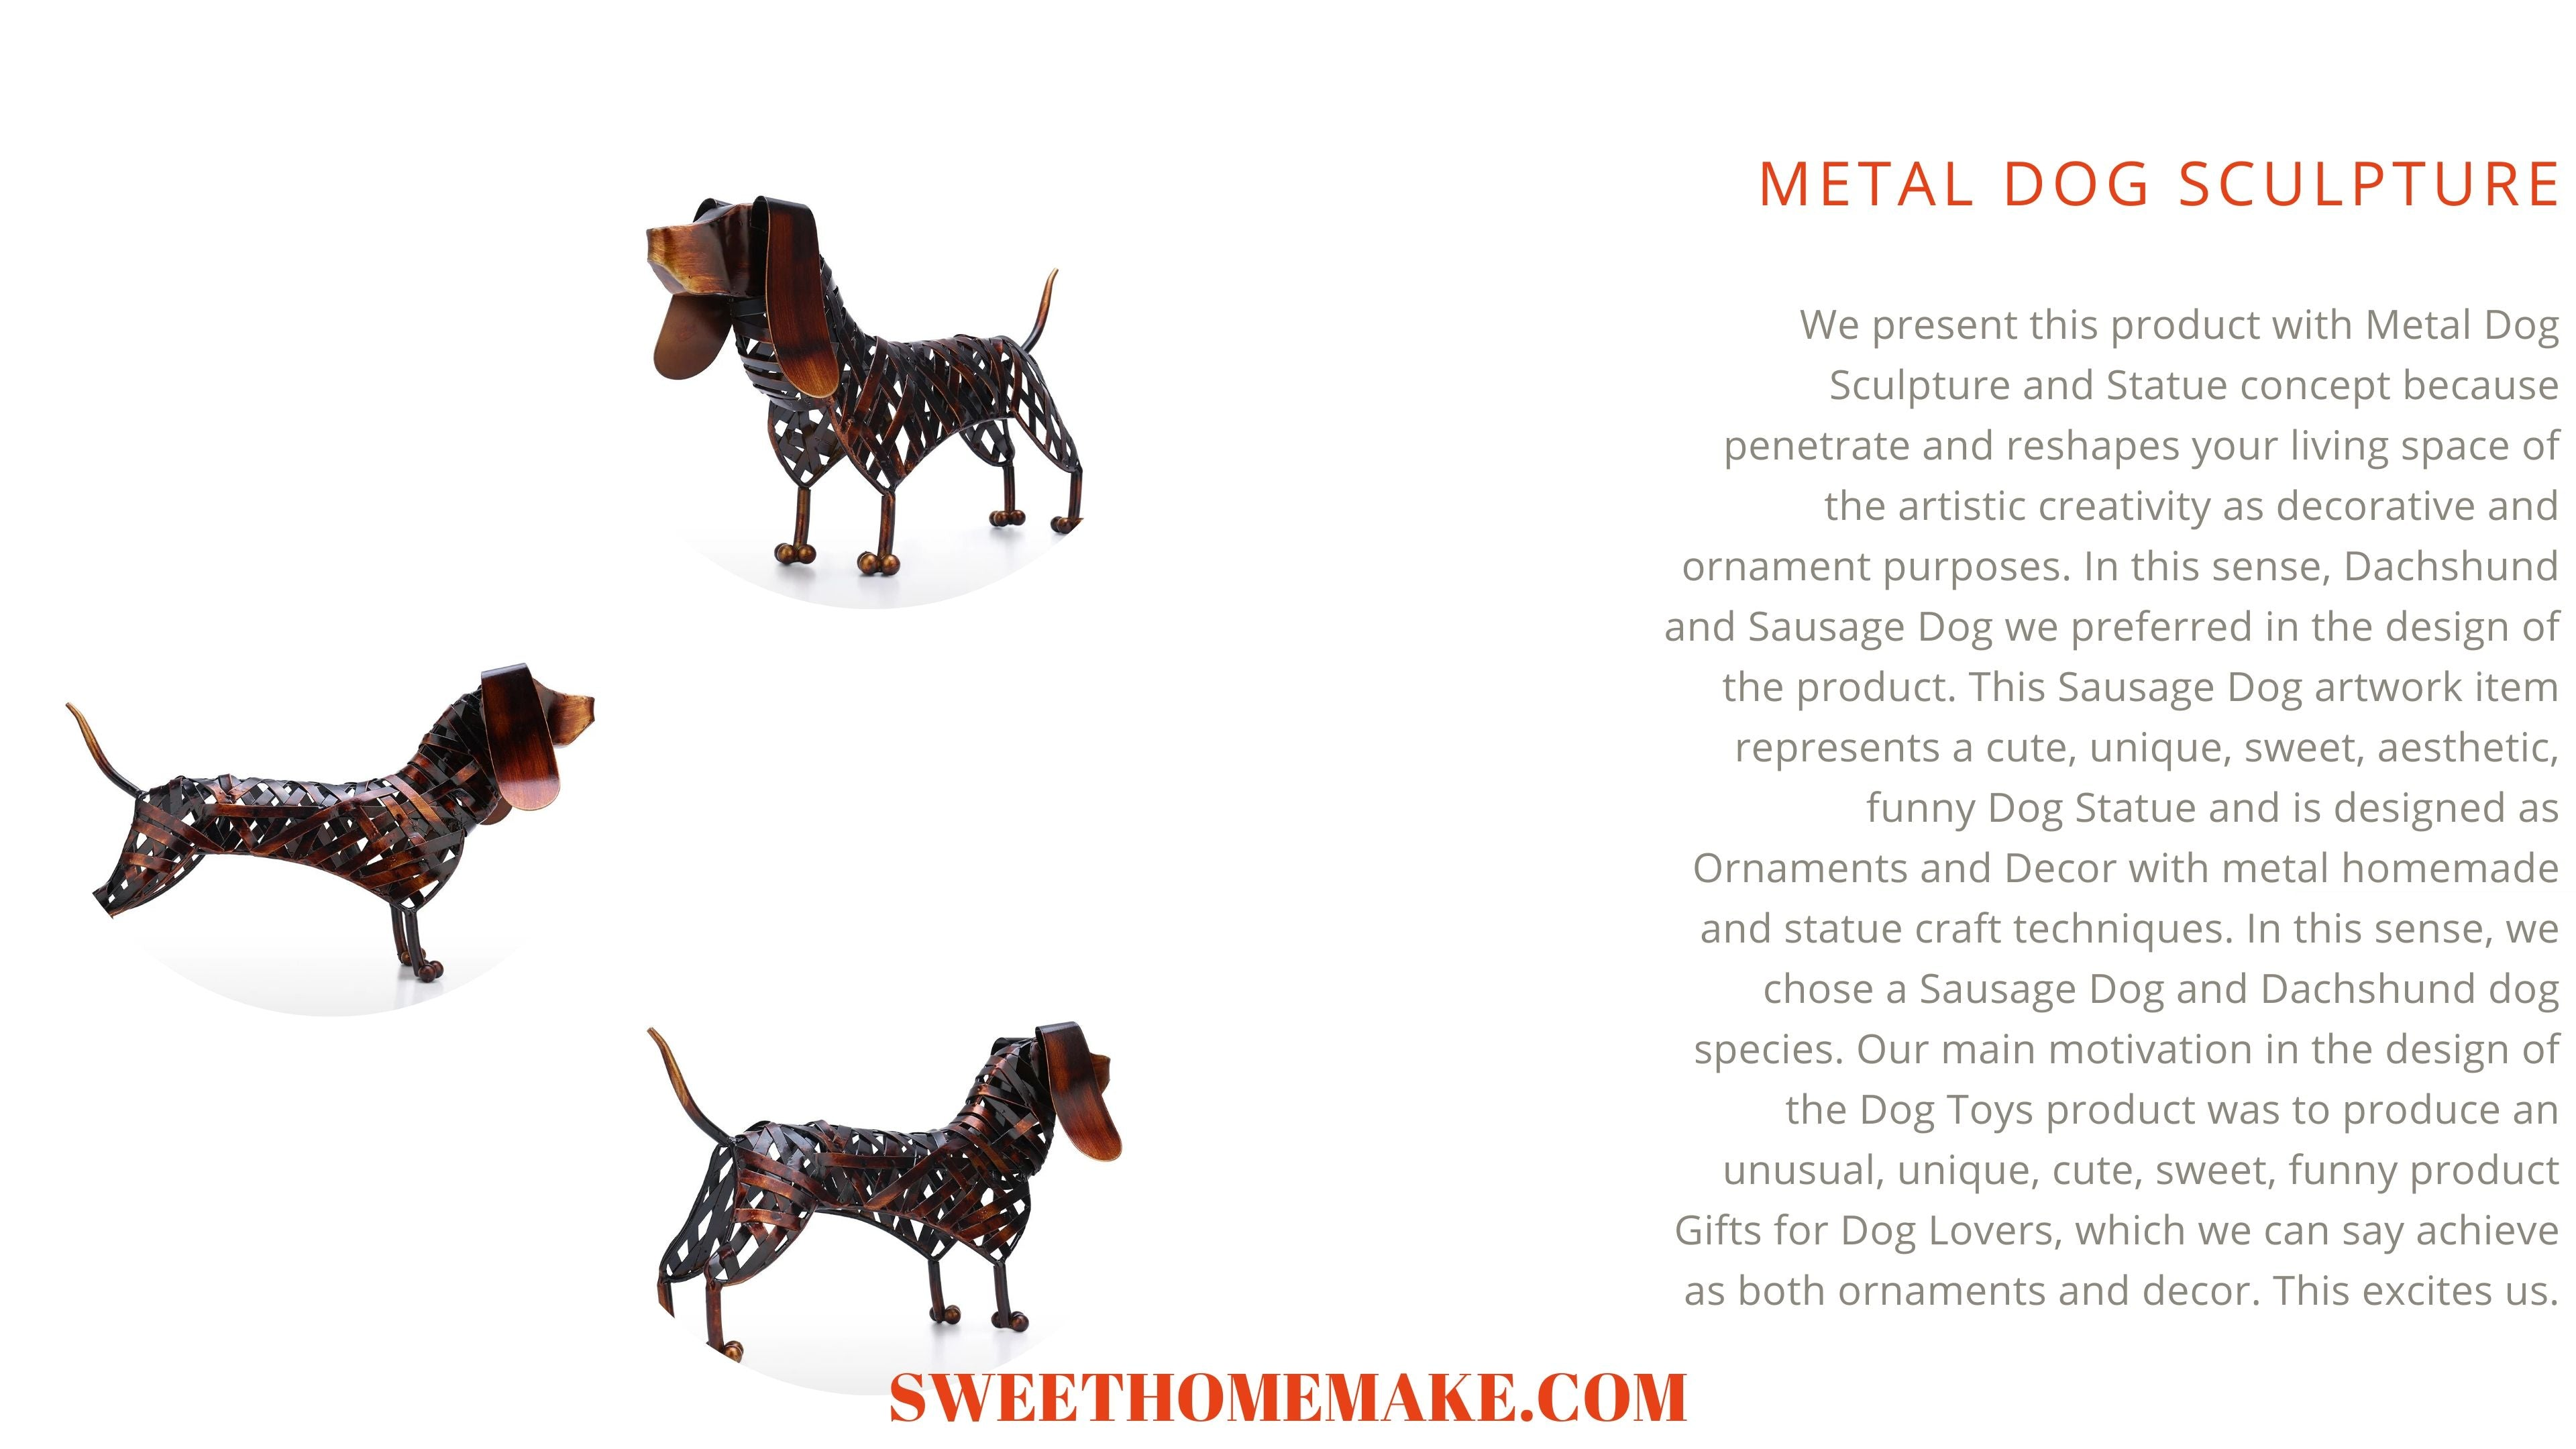 Metal Dog Sculpture a work of Art says Something and Produces a Feeling